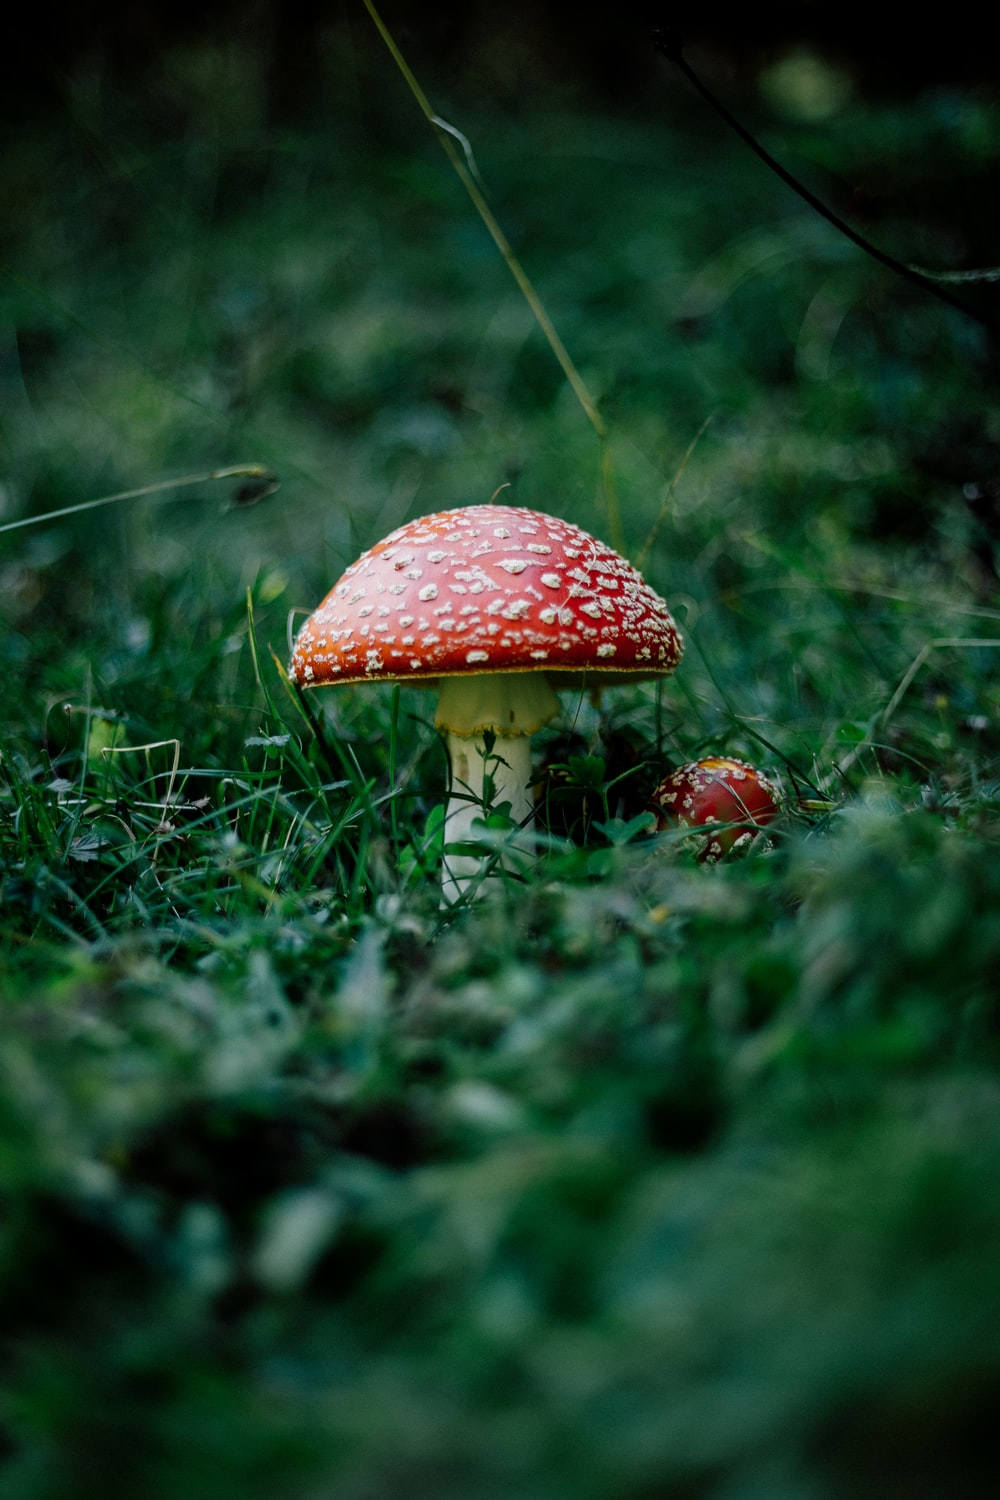 red mushroom on green grass